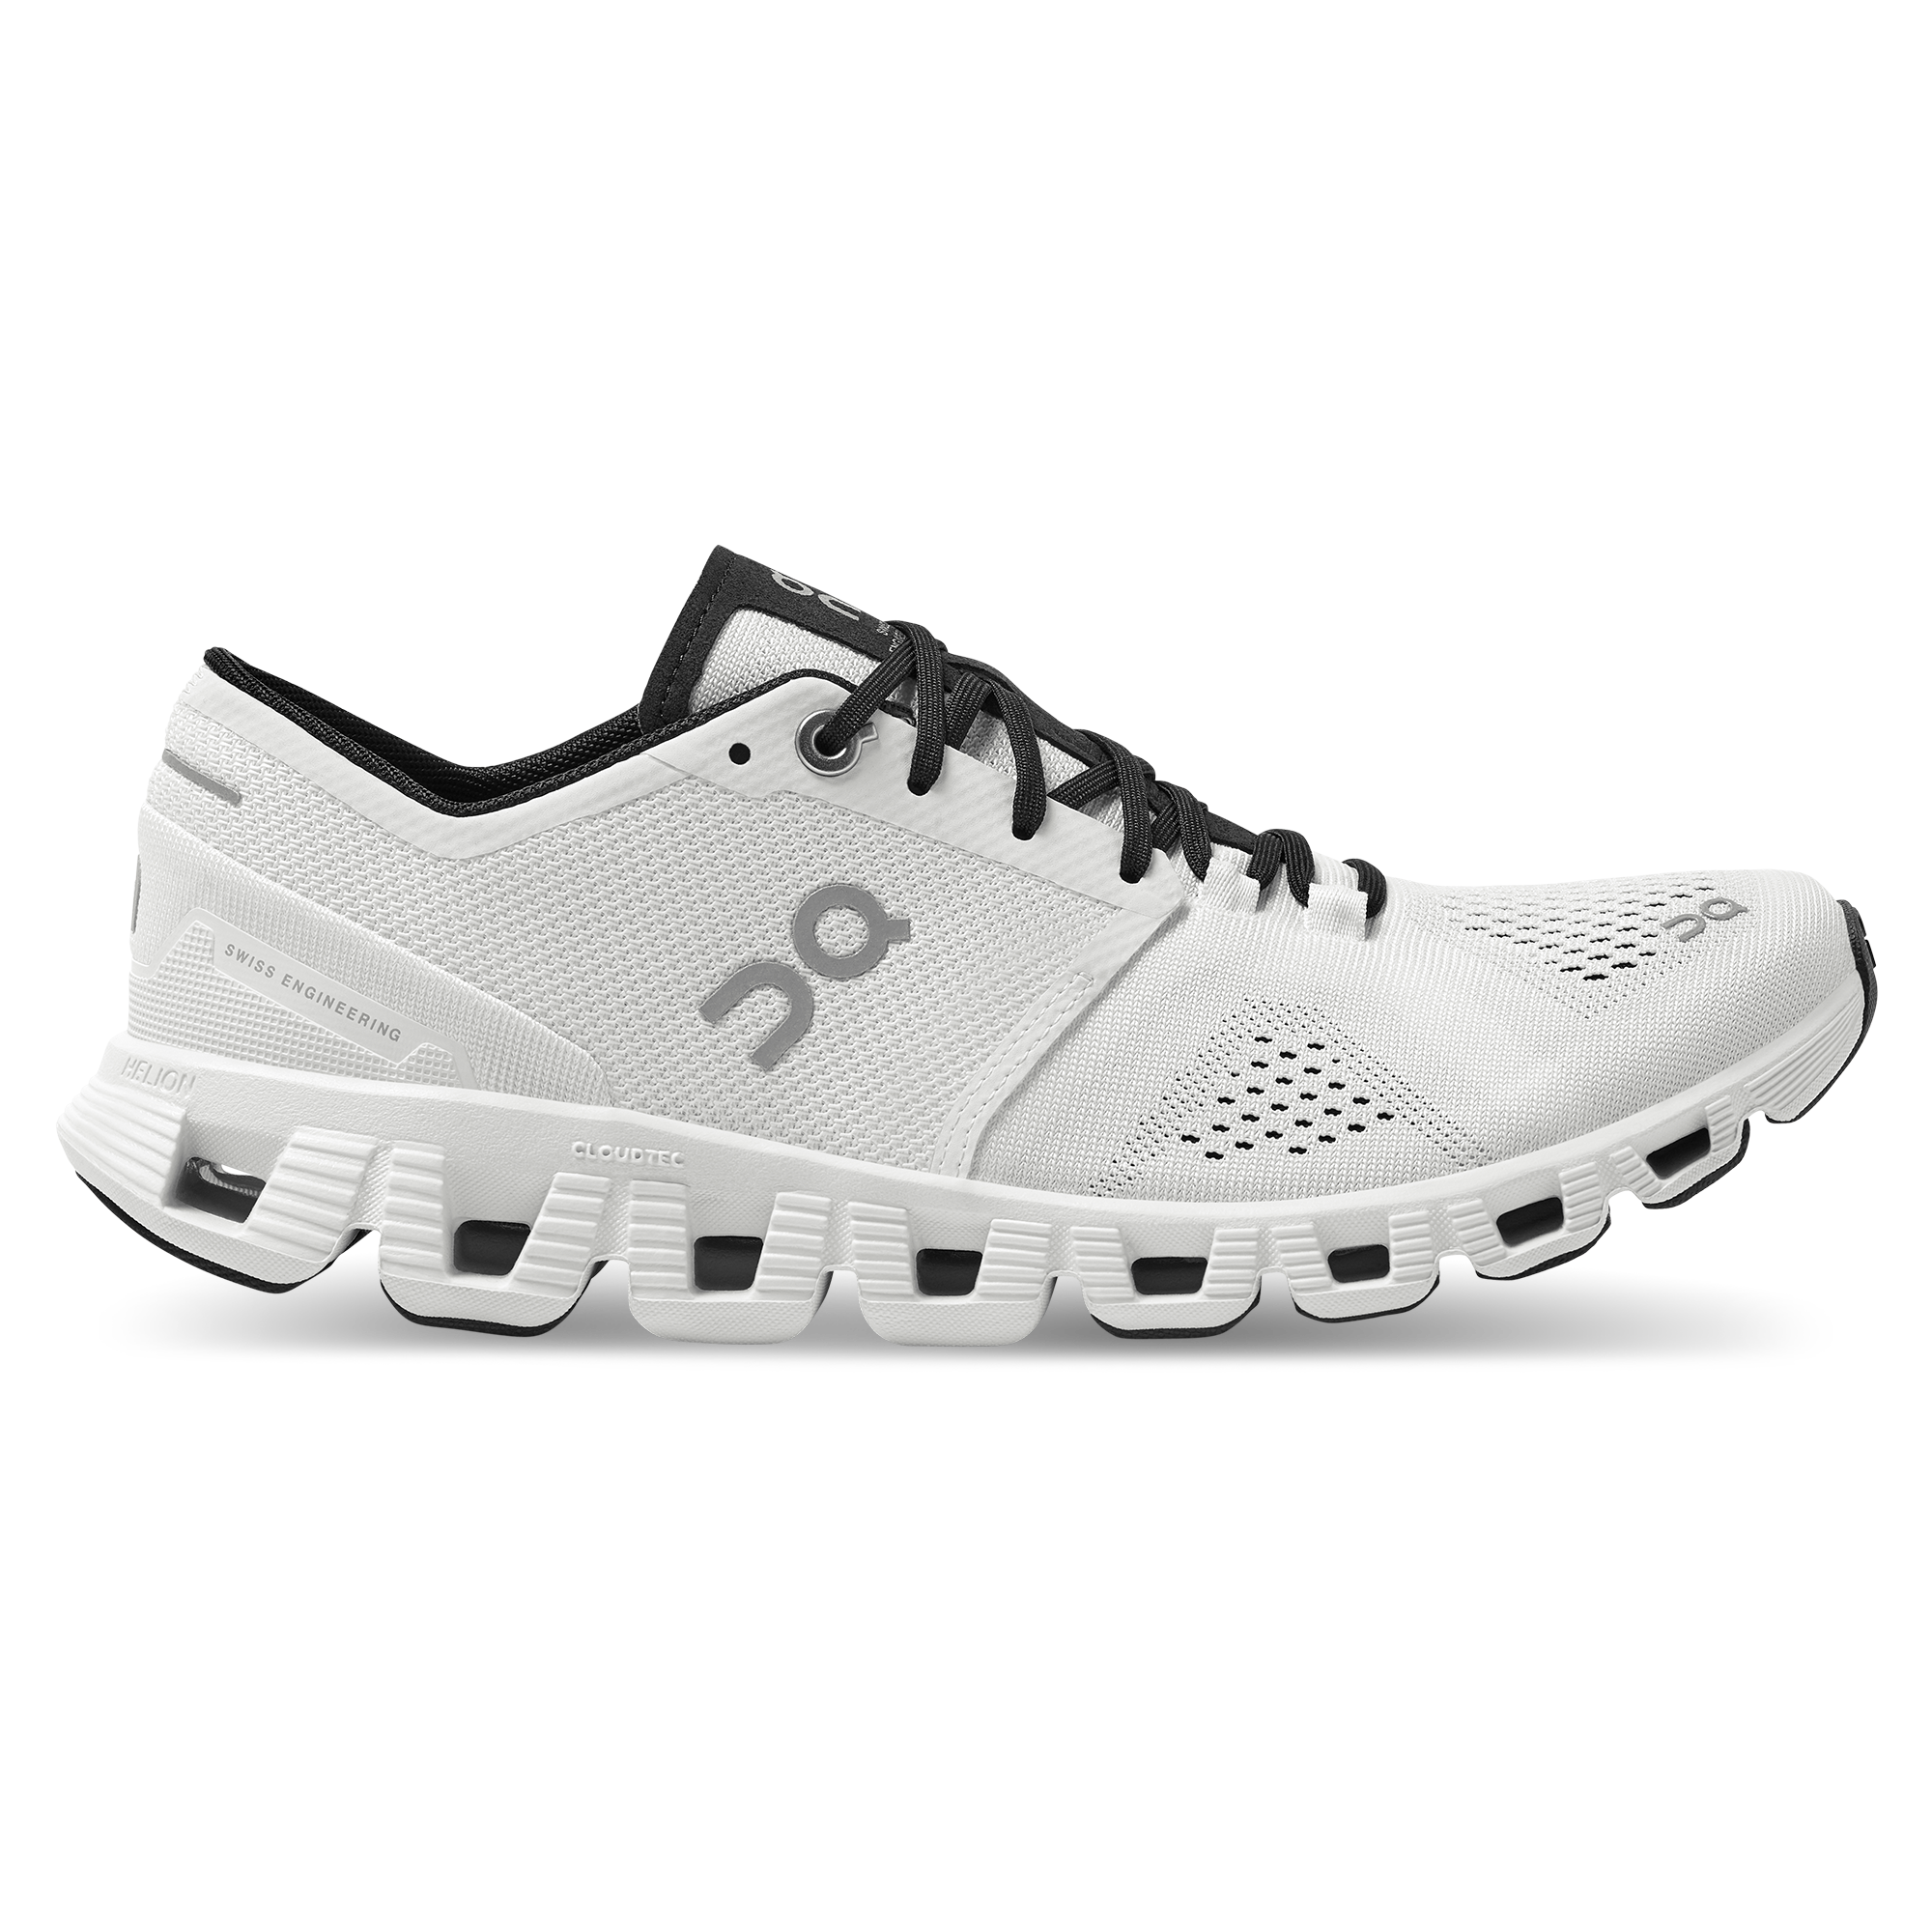 'On Running' Women's Cloud X - White / Black